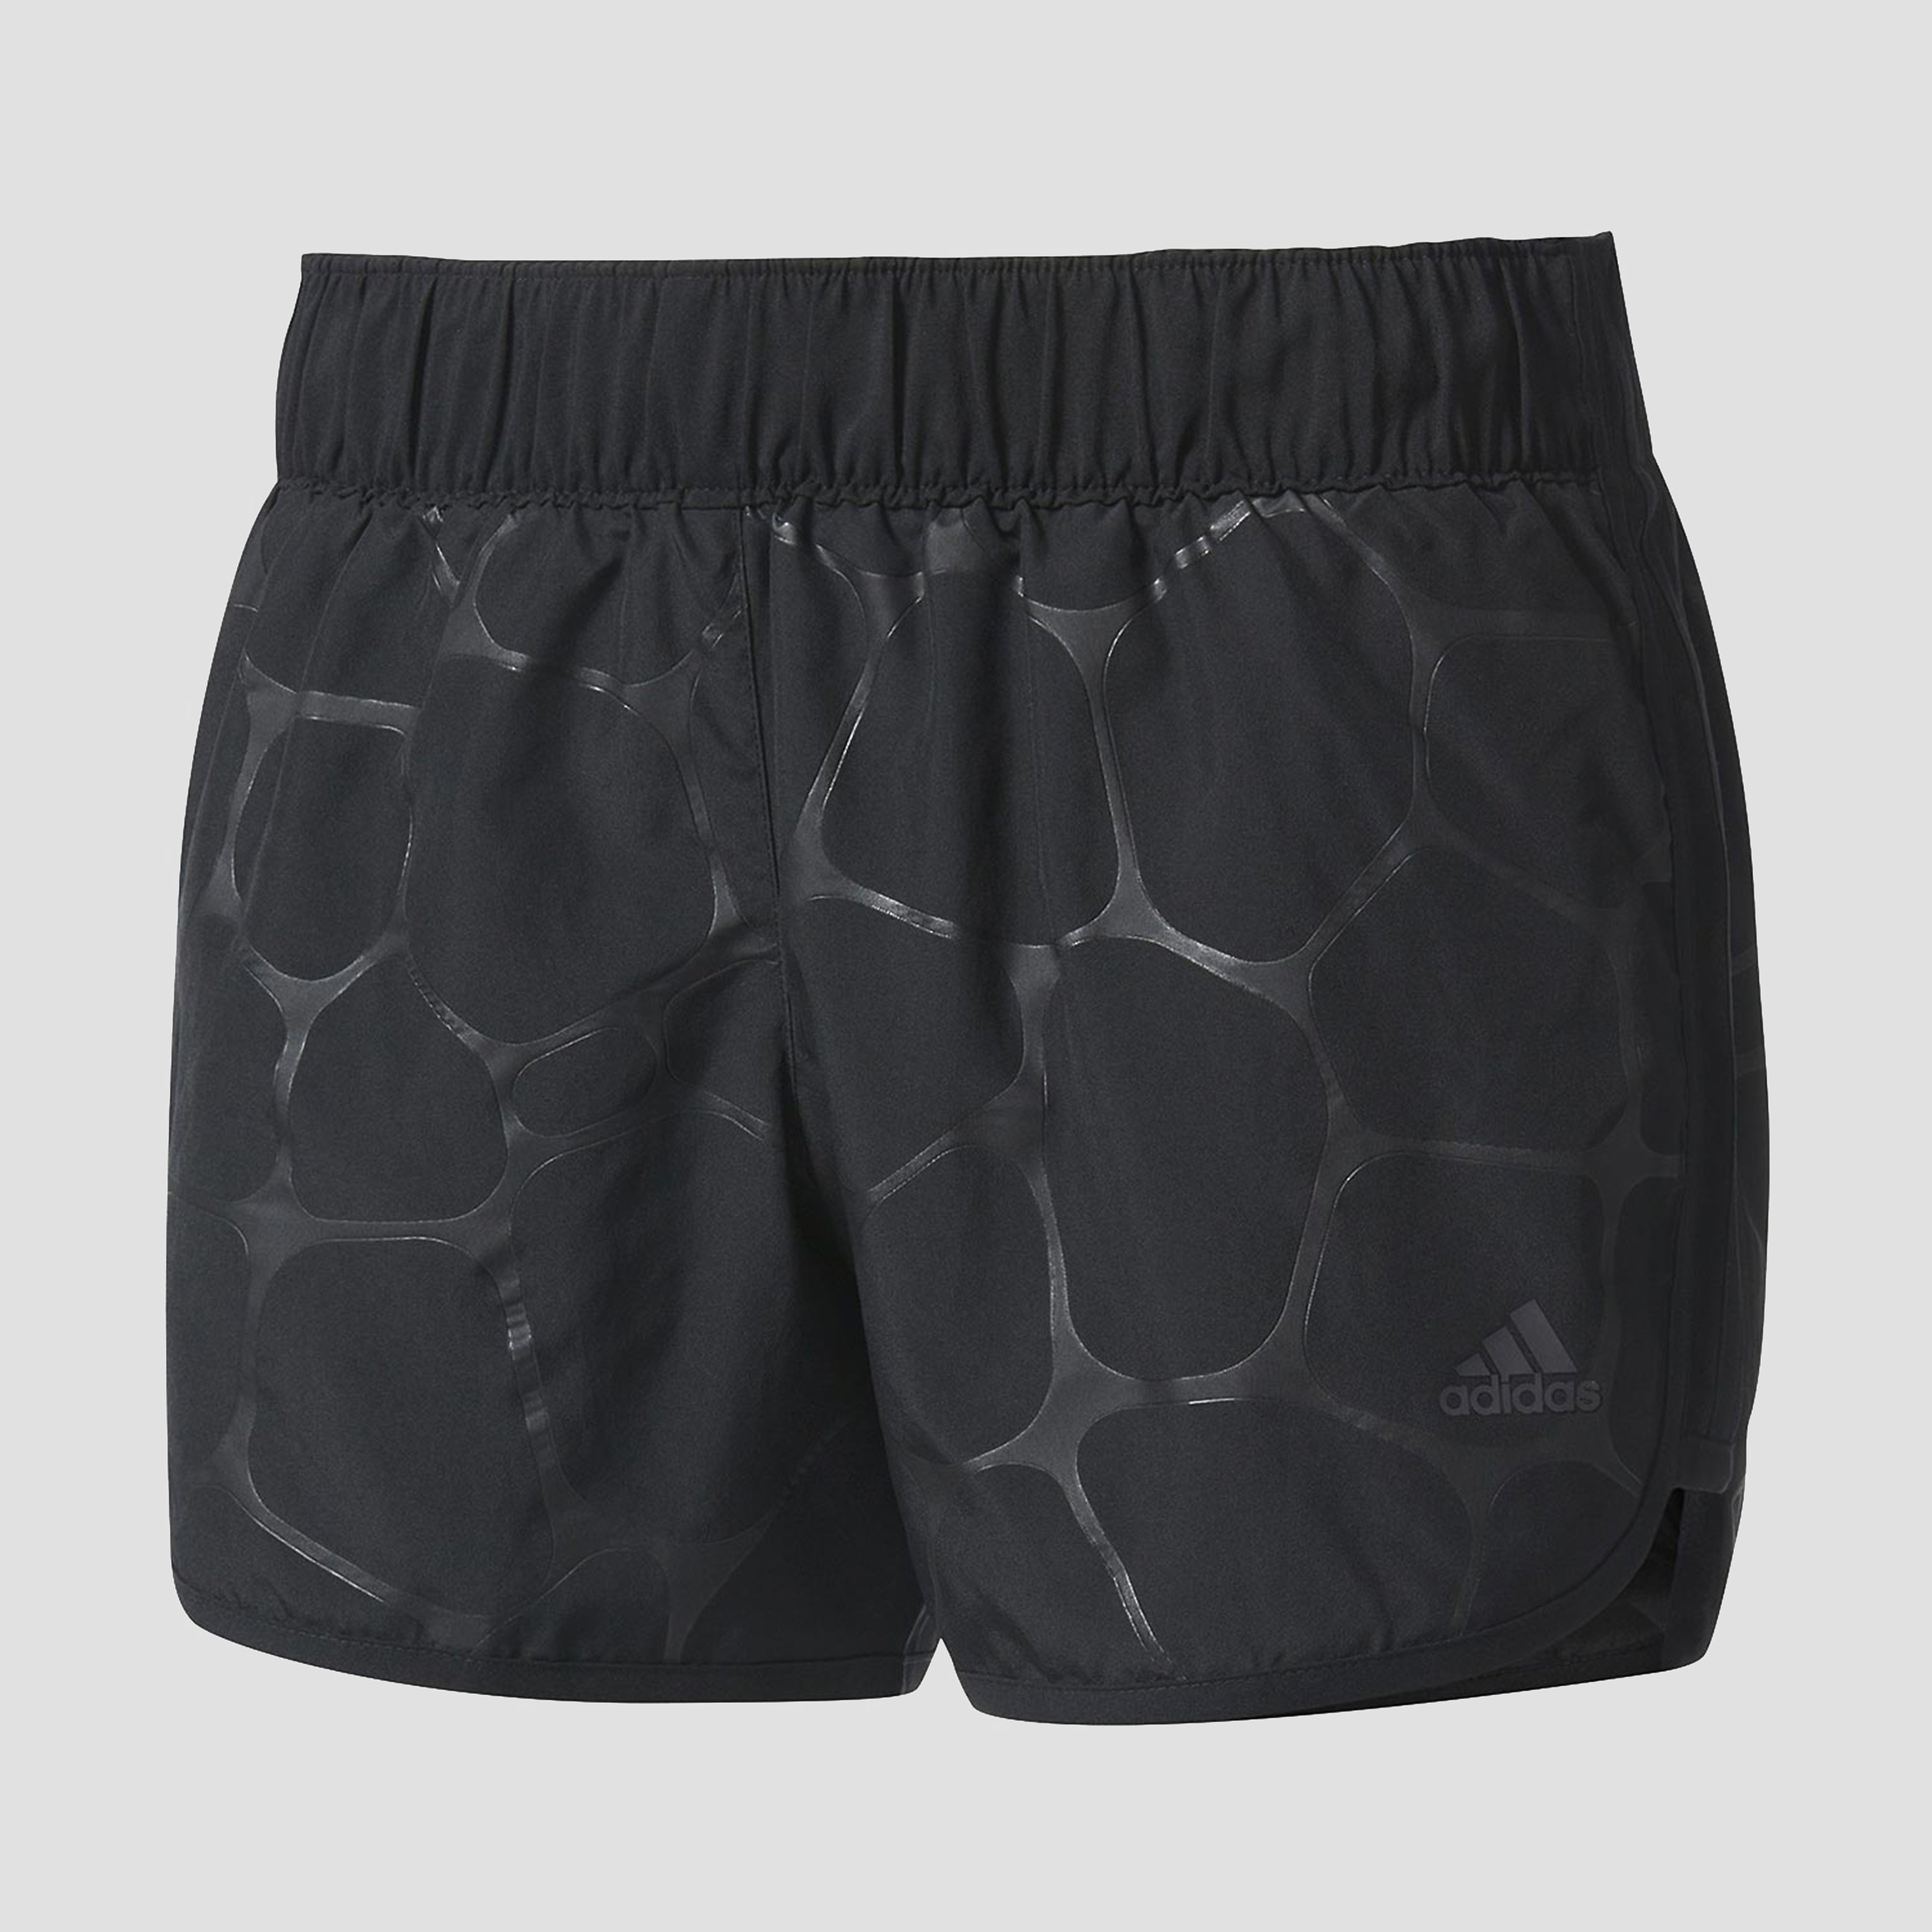 ADIDAS M10 ENERGIZED BOOST SHORT ZWART DAMES